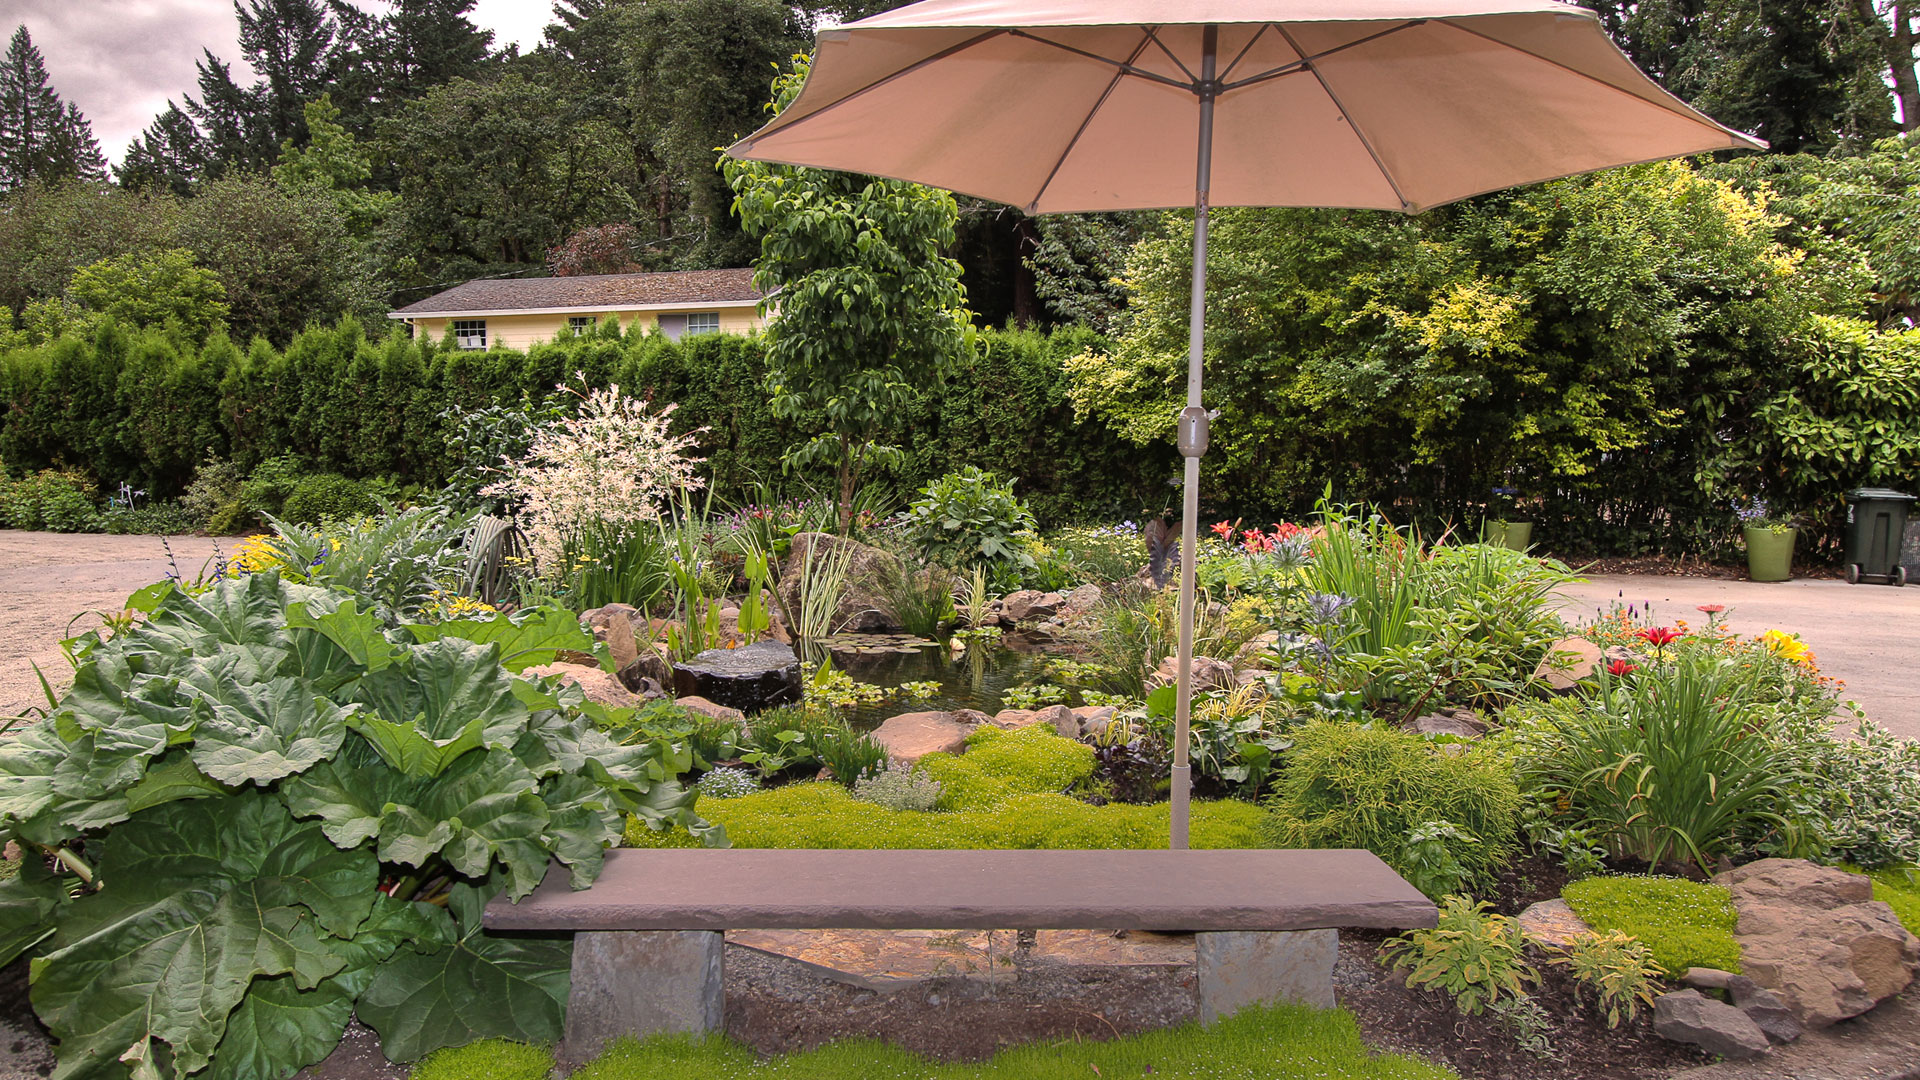 Backyard Oasis Beautiful Backyard Ideas - Beautiful backyard ideas